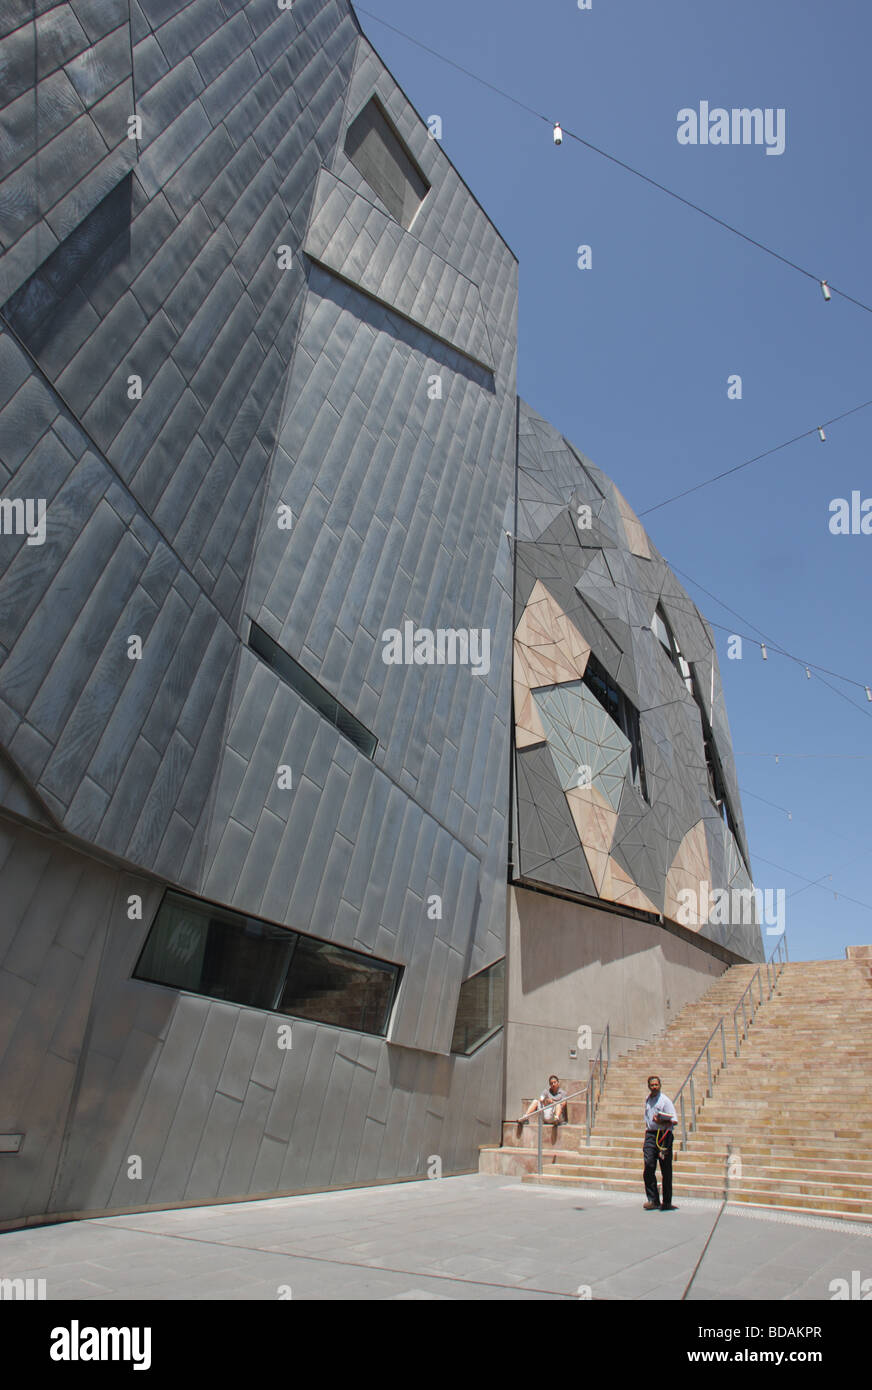 Modern building in Federation Square in Melbourne, Australia. - Stock Image